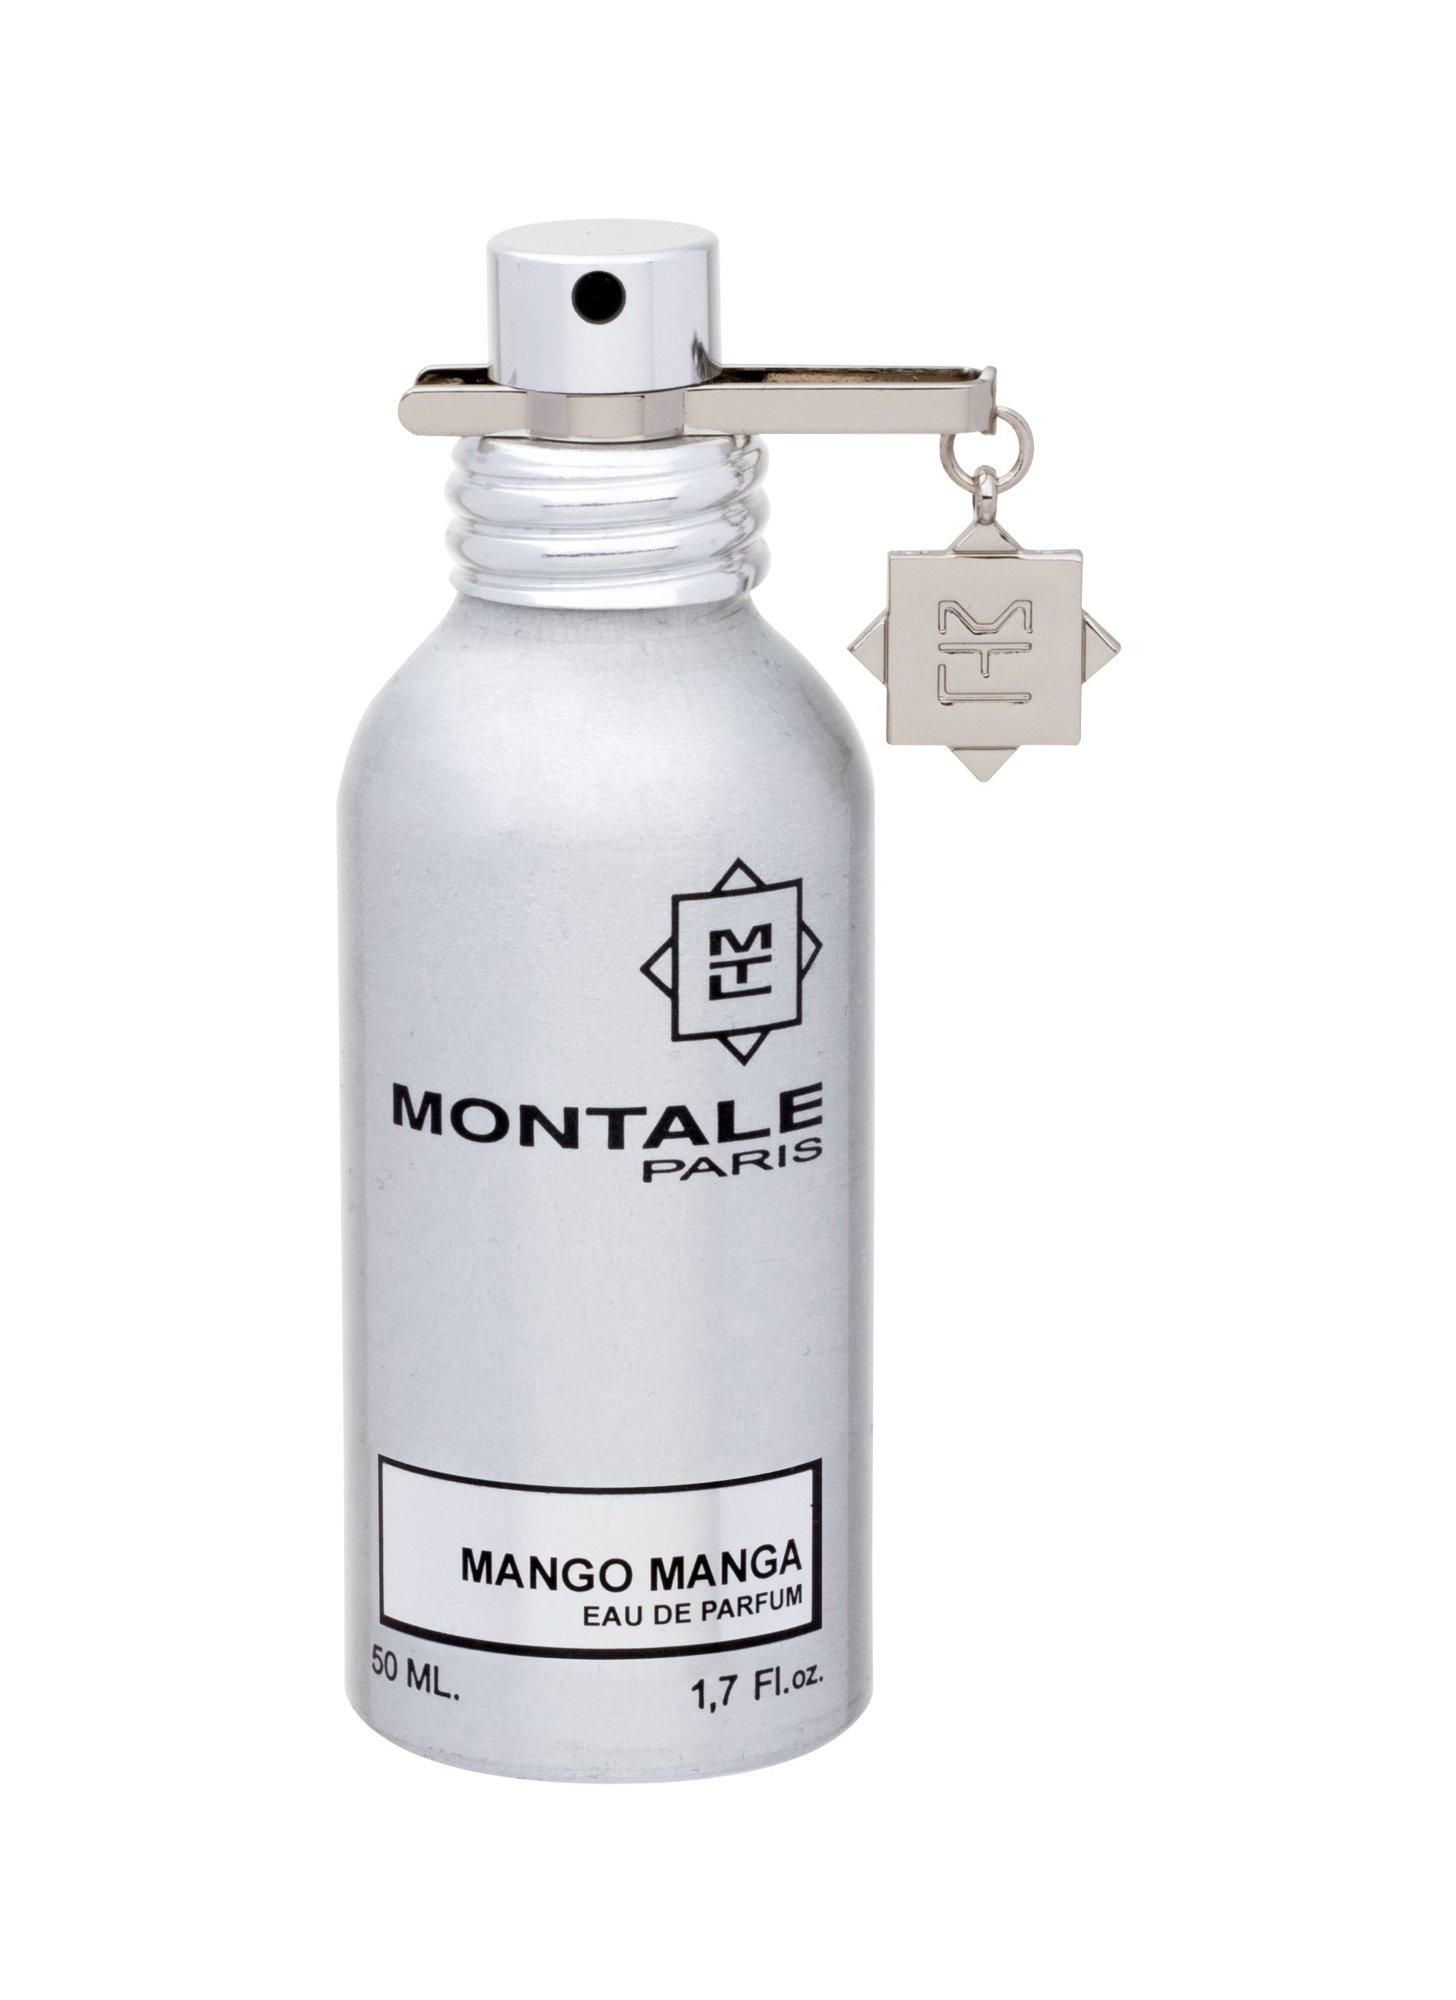 Montale Paris Mango Manga EDP 50ml